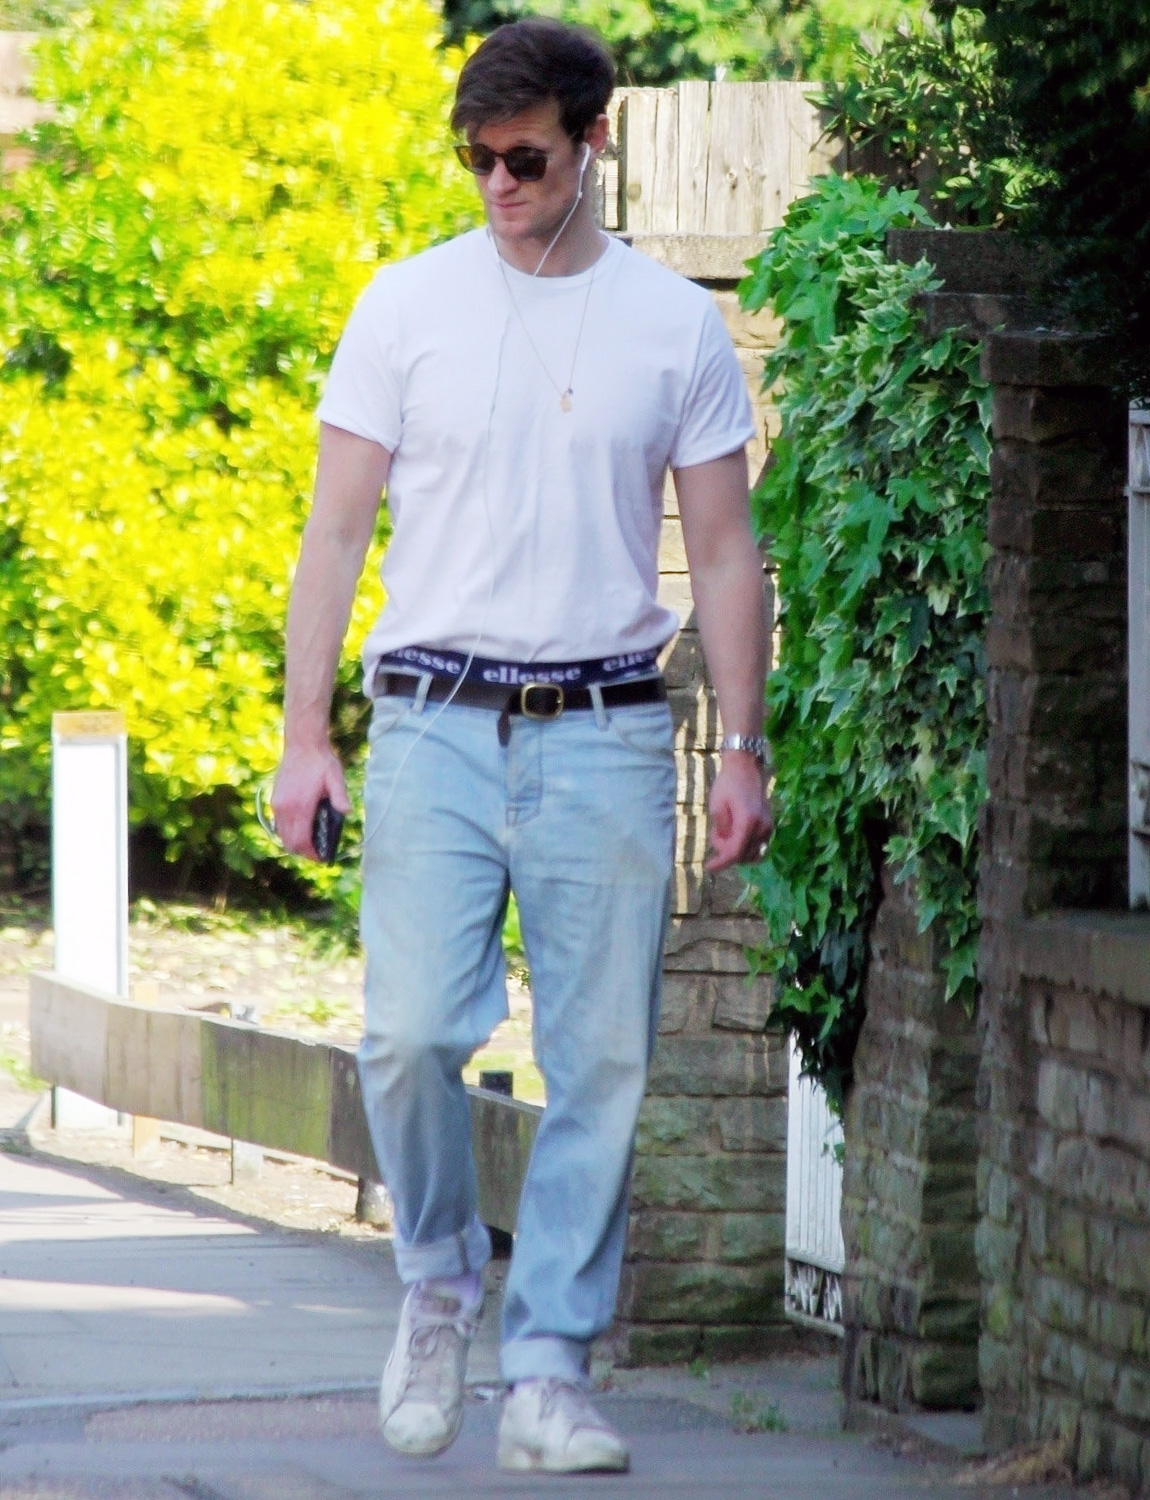 Matt Smith takes a solo stroll while showing us his underwear